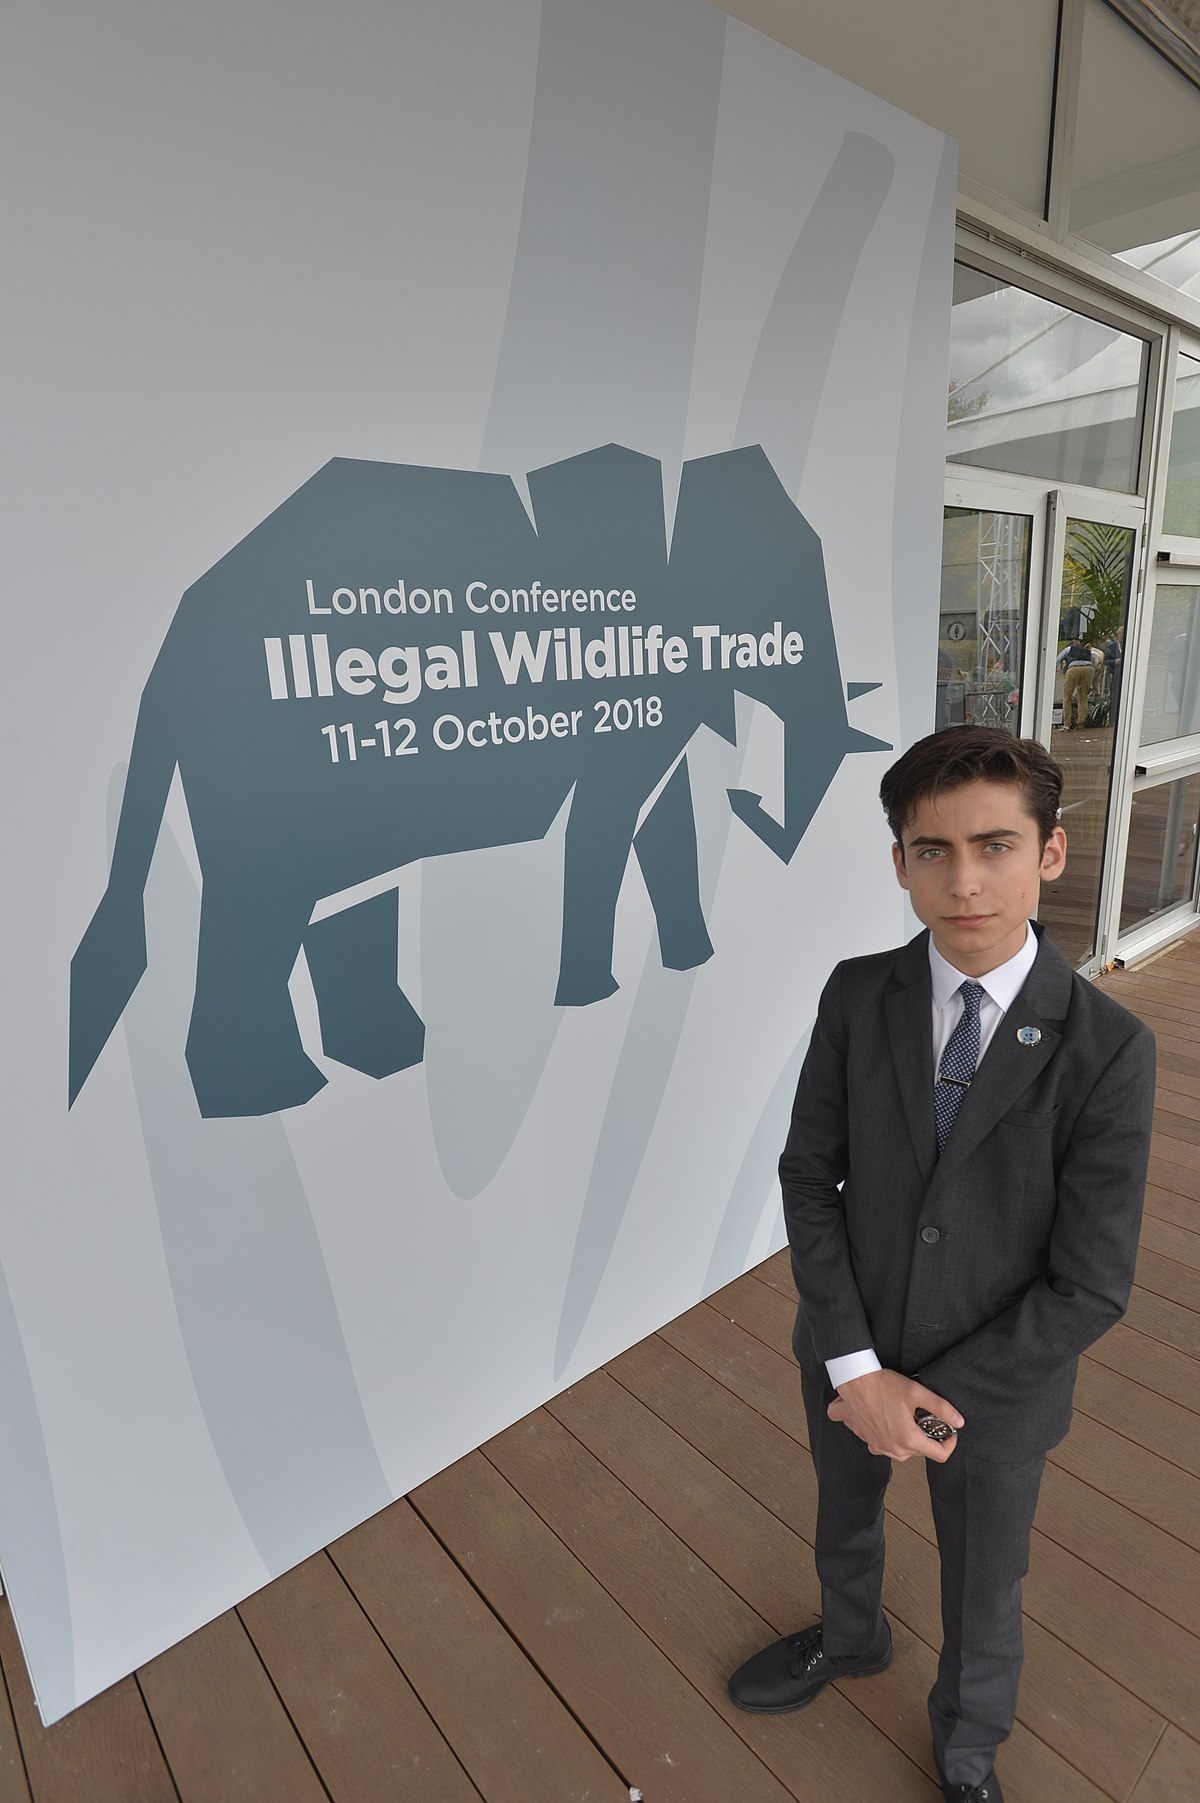 London Conference on the Illegal Wildlife Trade Wikipedia